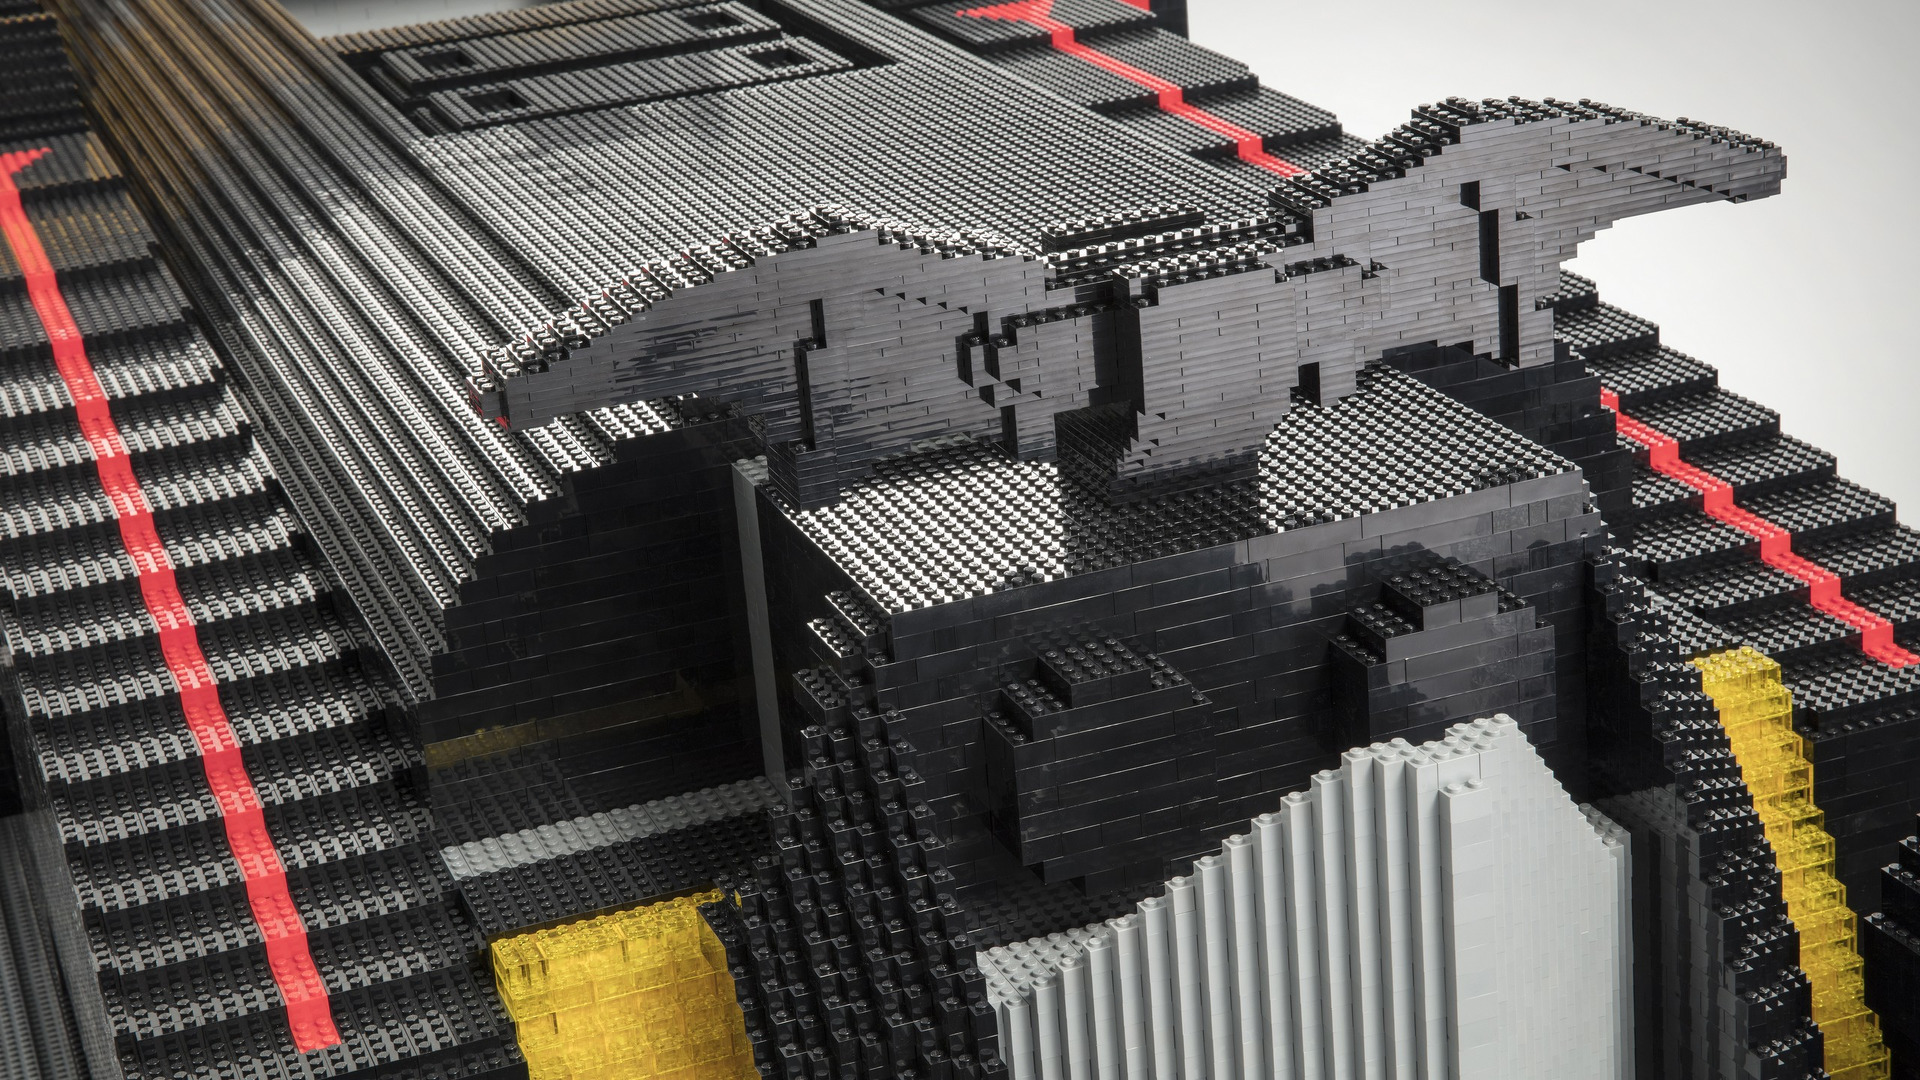 Built using more than 340,000 LEGO® bricks and measuring 17 fee